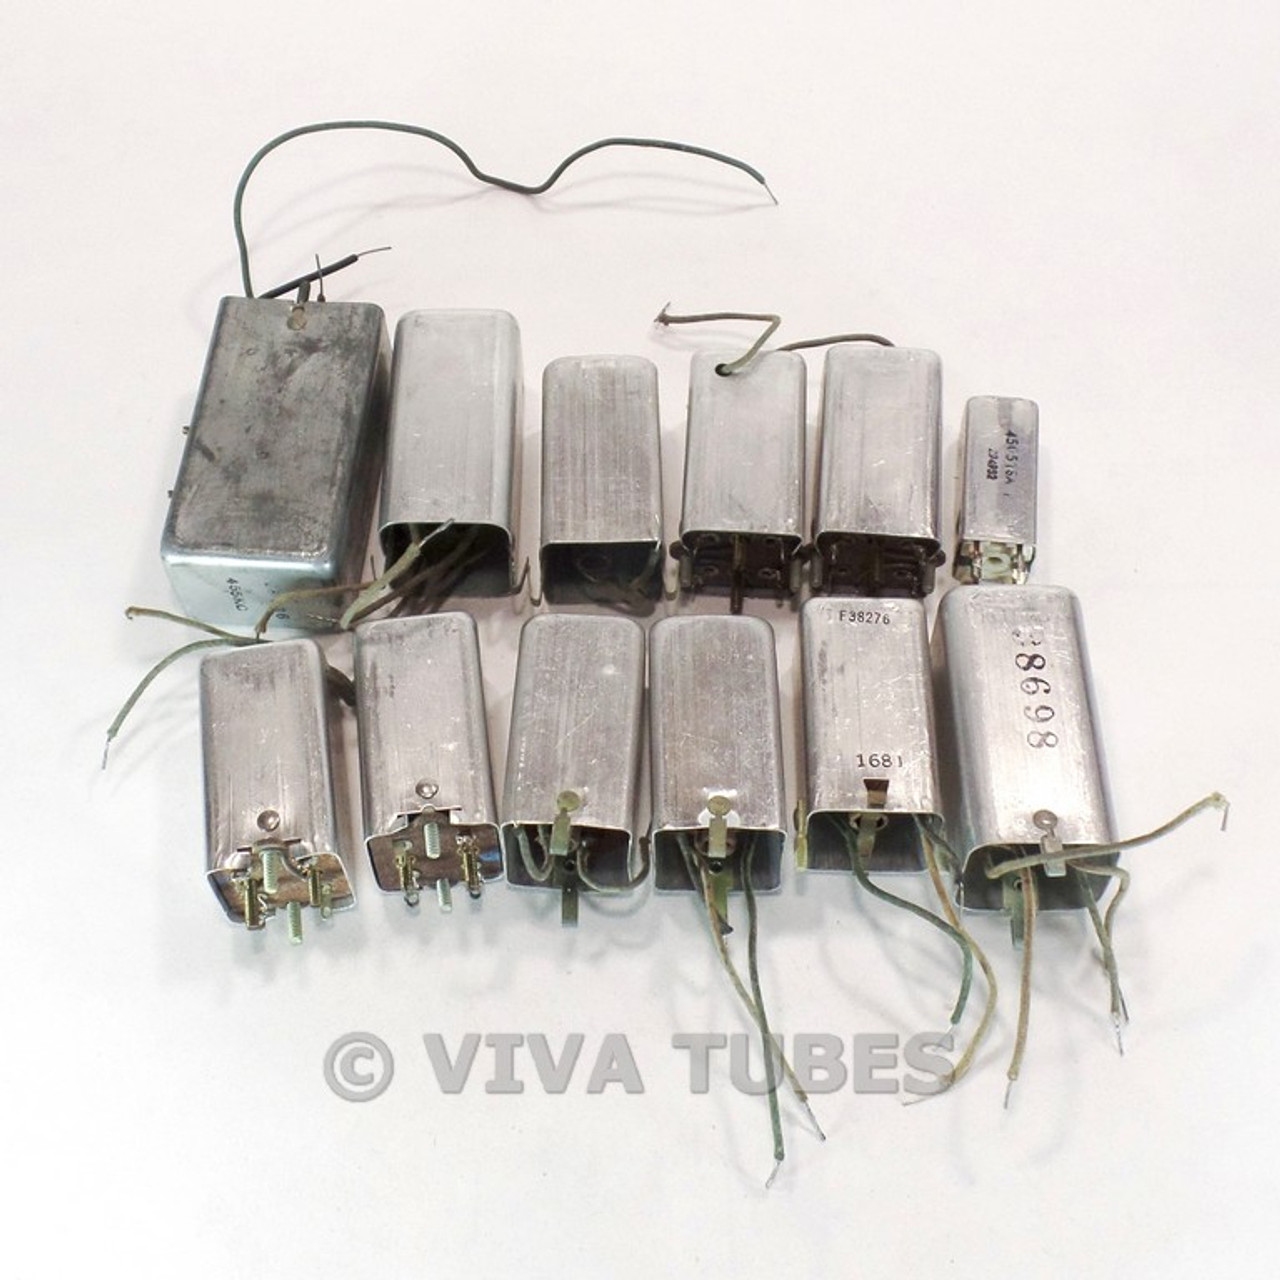 Vintage Lot of 12 Unknown IF/RF Tuning Coil Transformers Tube HAM Radio